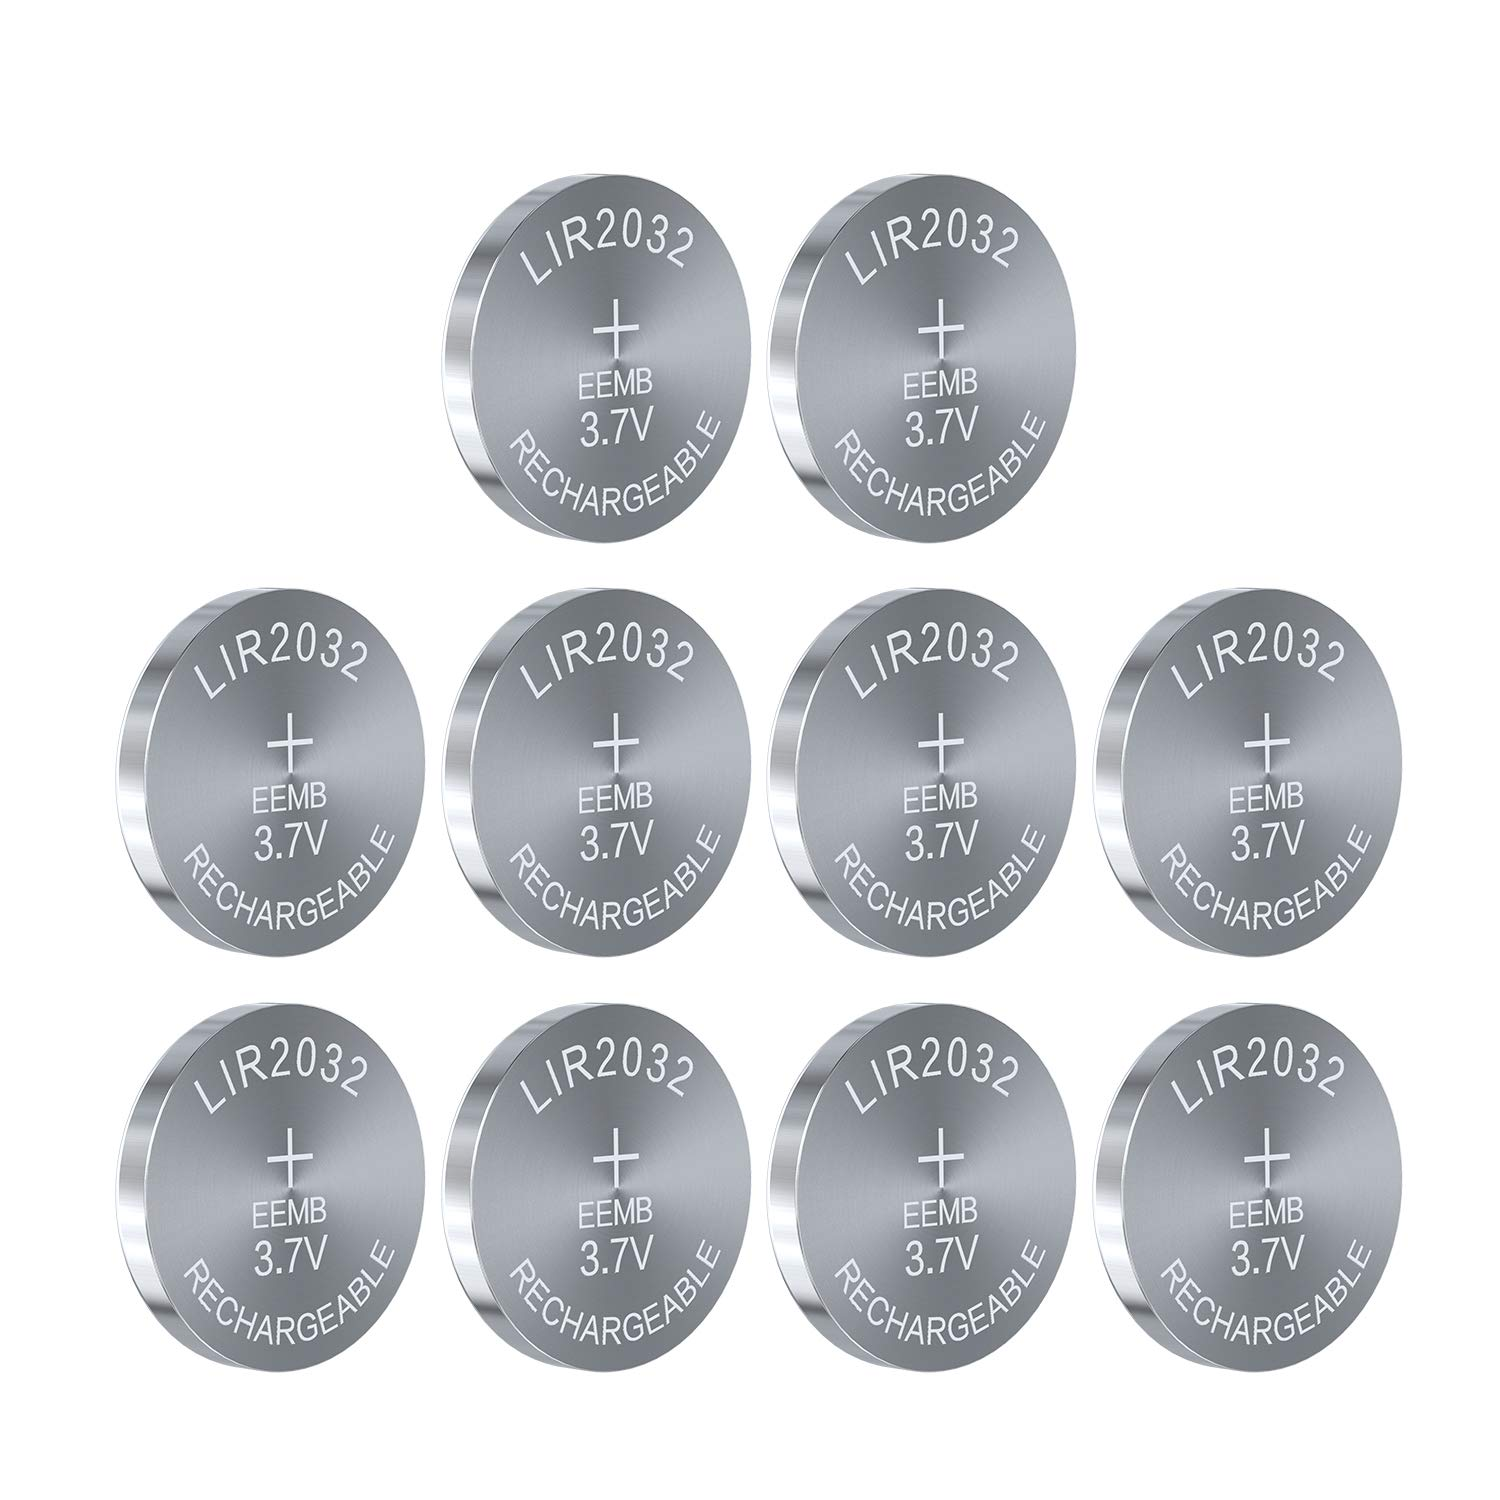 3.7V 45mAh LIR2032 Rechargeable Cell Li-ion Button Battery UL Certified for Bluetooth Earphone Light Game Controllers (10PCS)